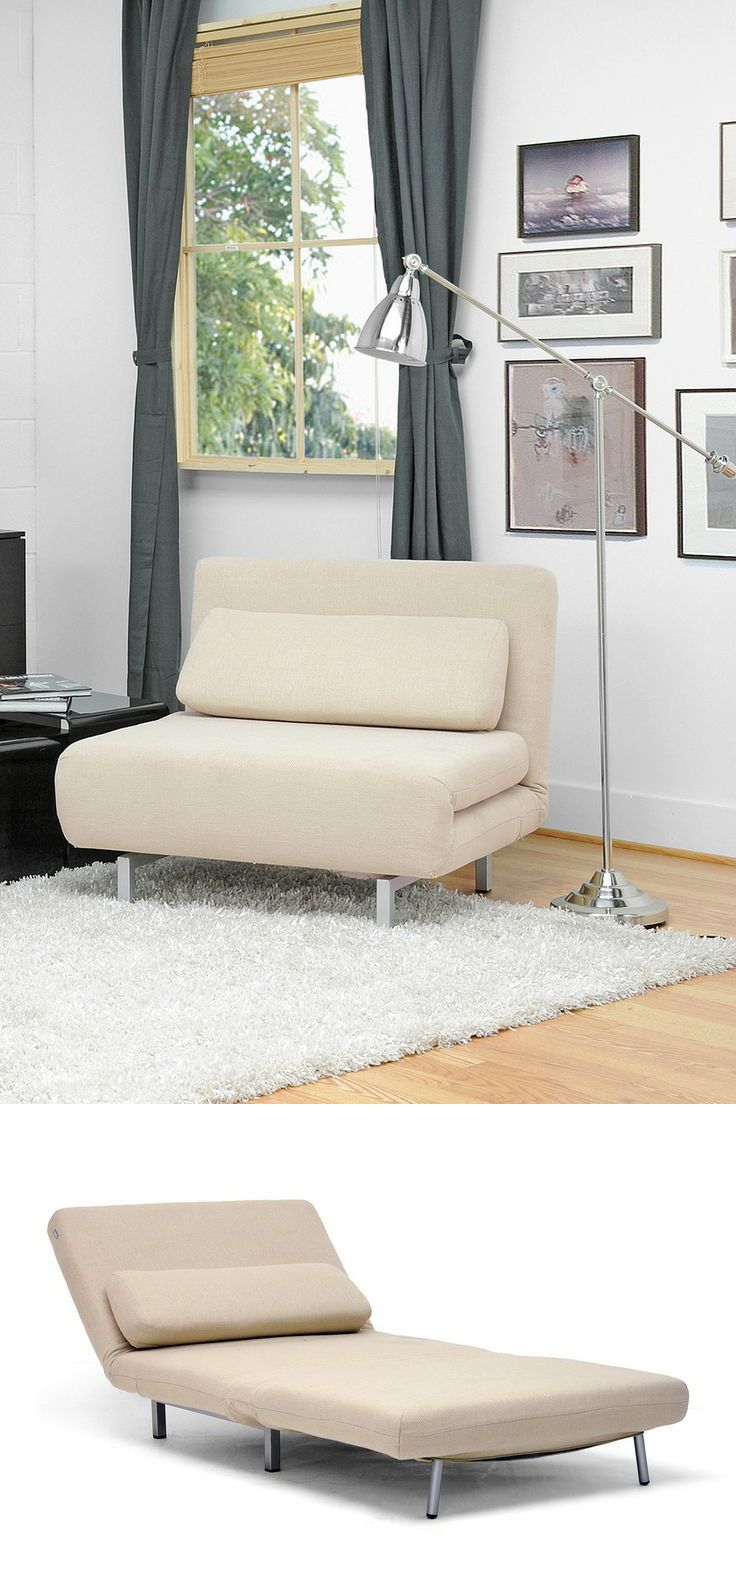 Amiens Cream Convertible Accent Chair-Bed